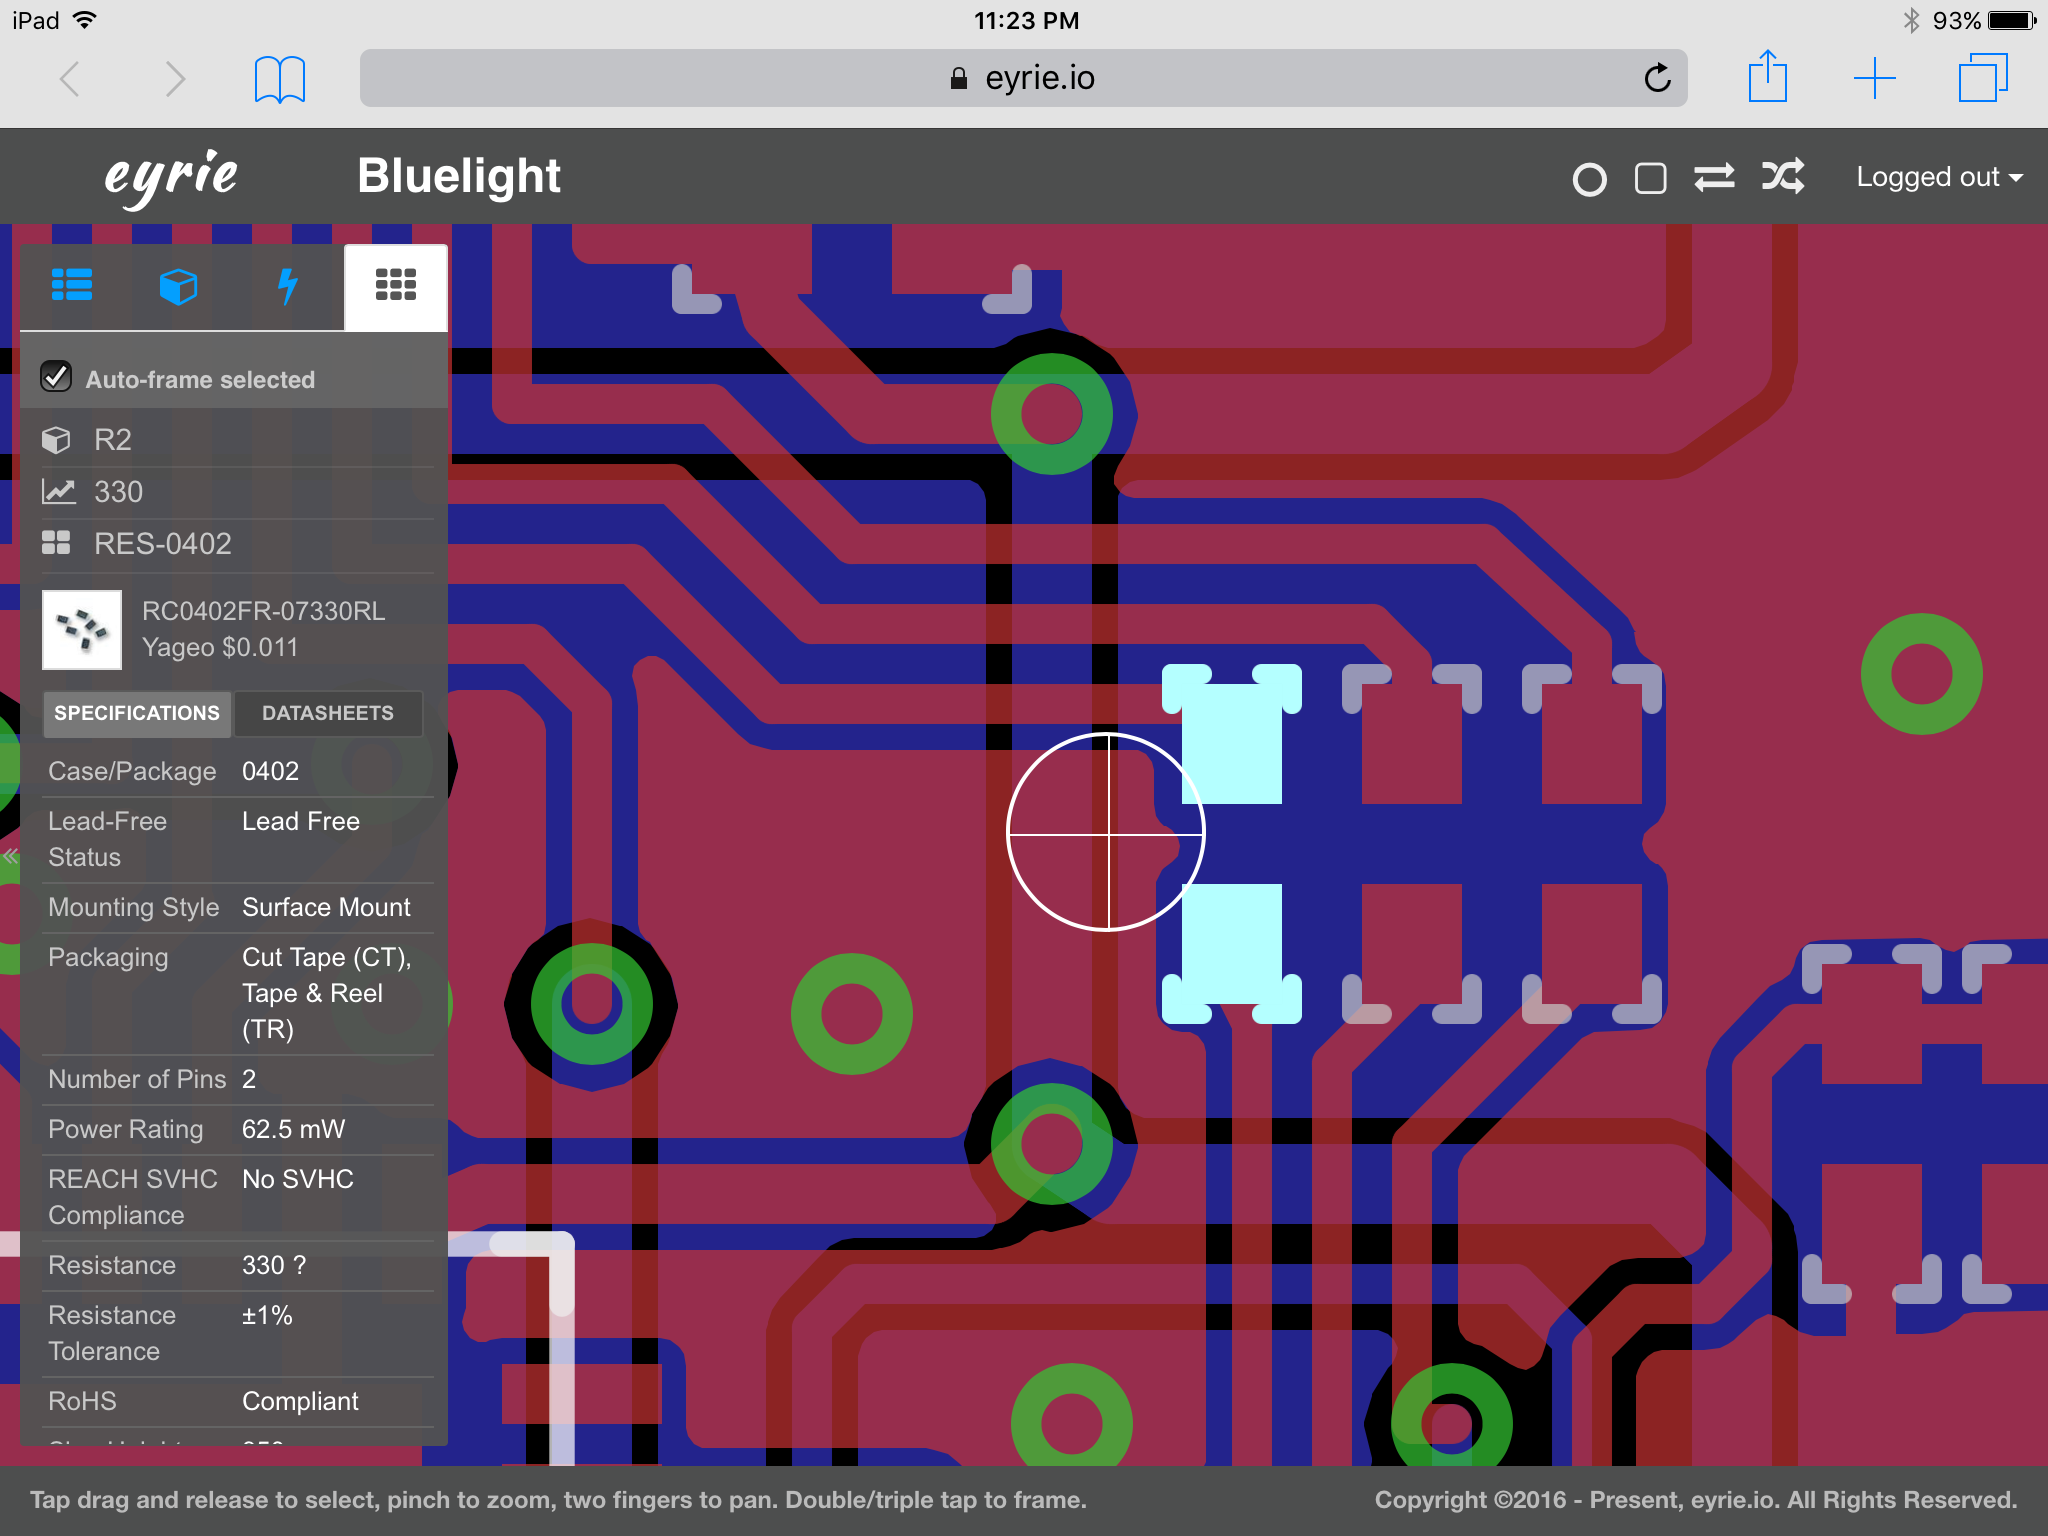 bluelight-ipad-landscape.png